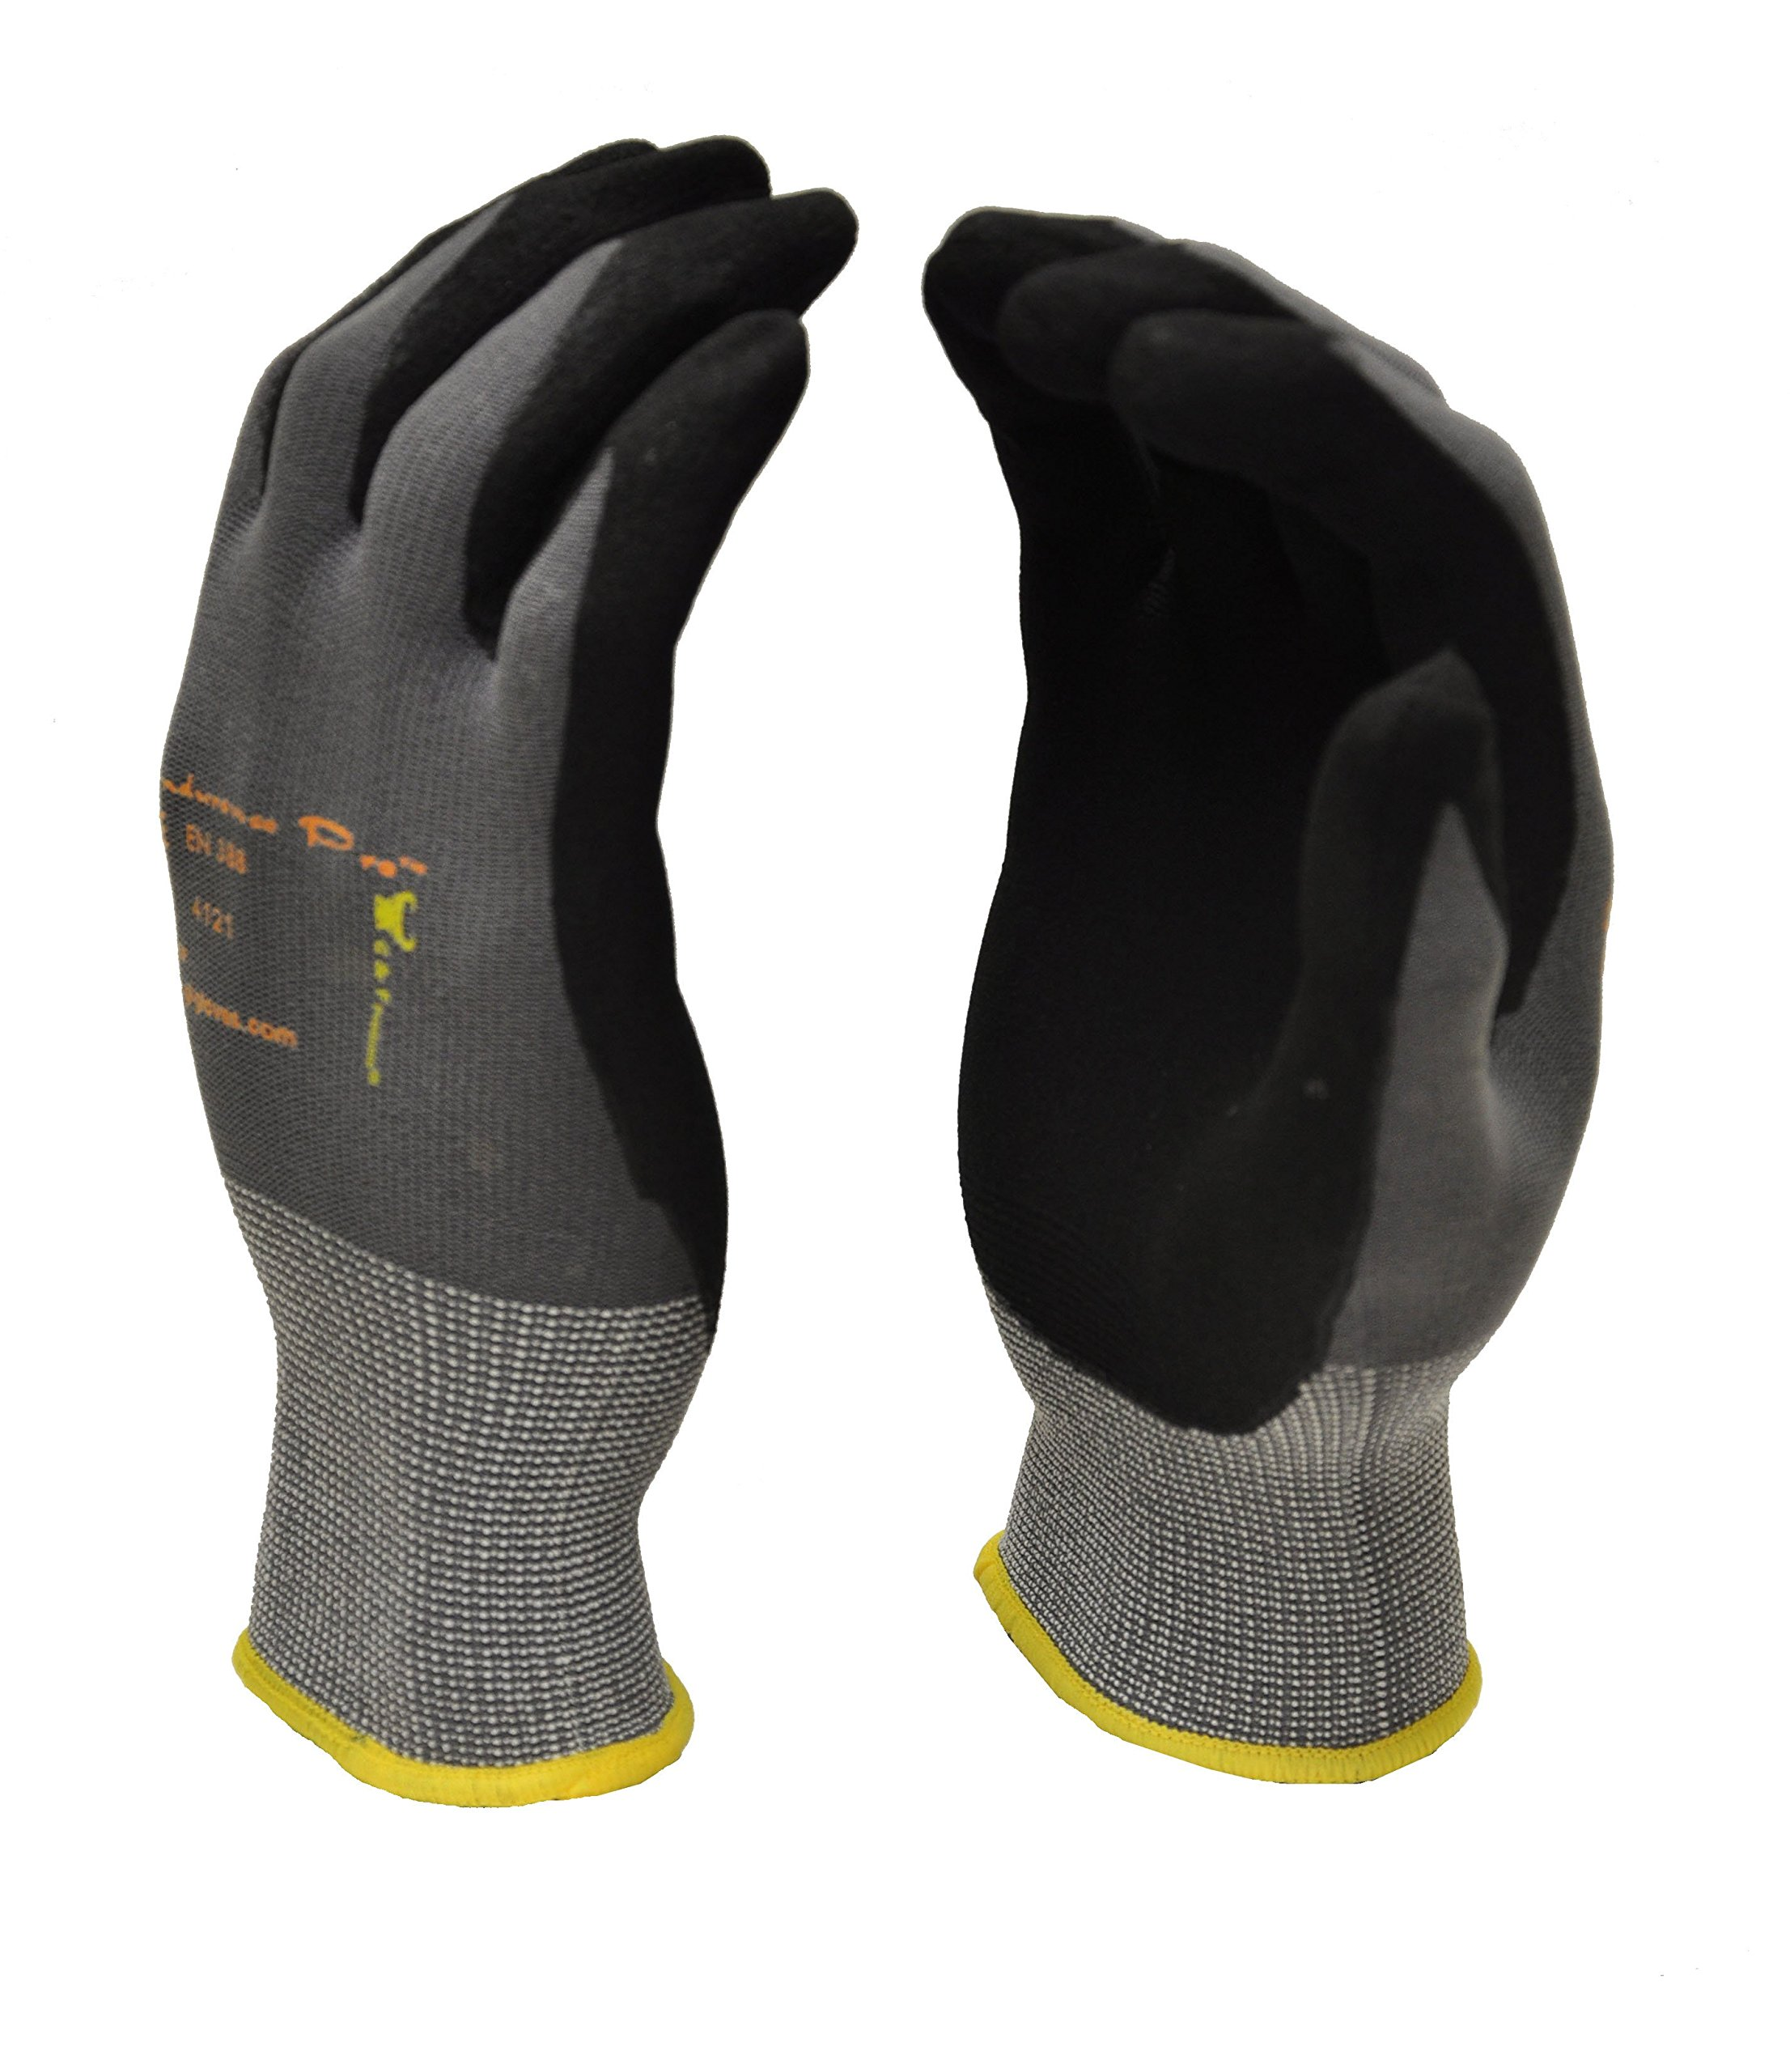 G & F 1529S-3 EndurancePRO MicroFoam Nitrile Coated Work Gloves for General Purposes, Lightweight Work Gloves, 3 Pair Pack, Small